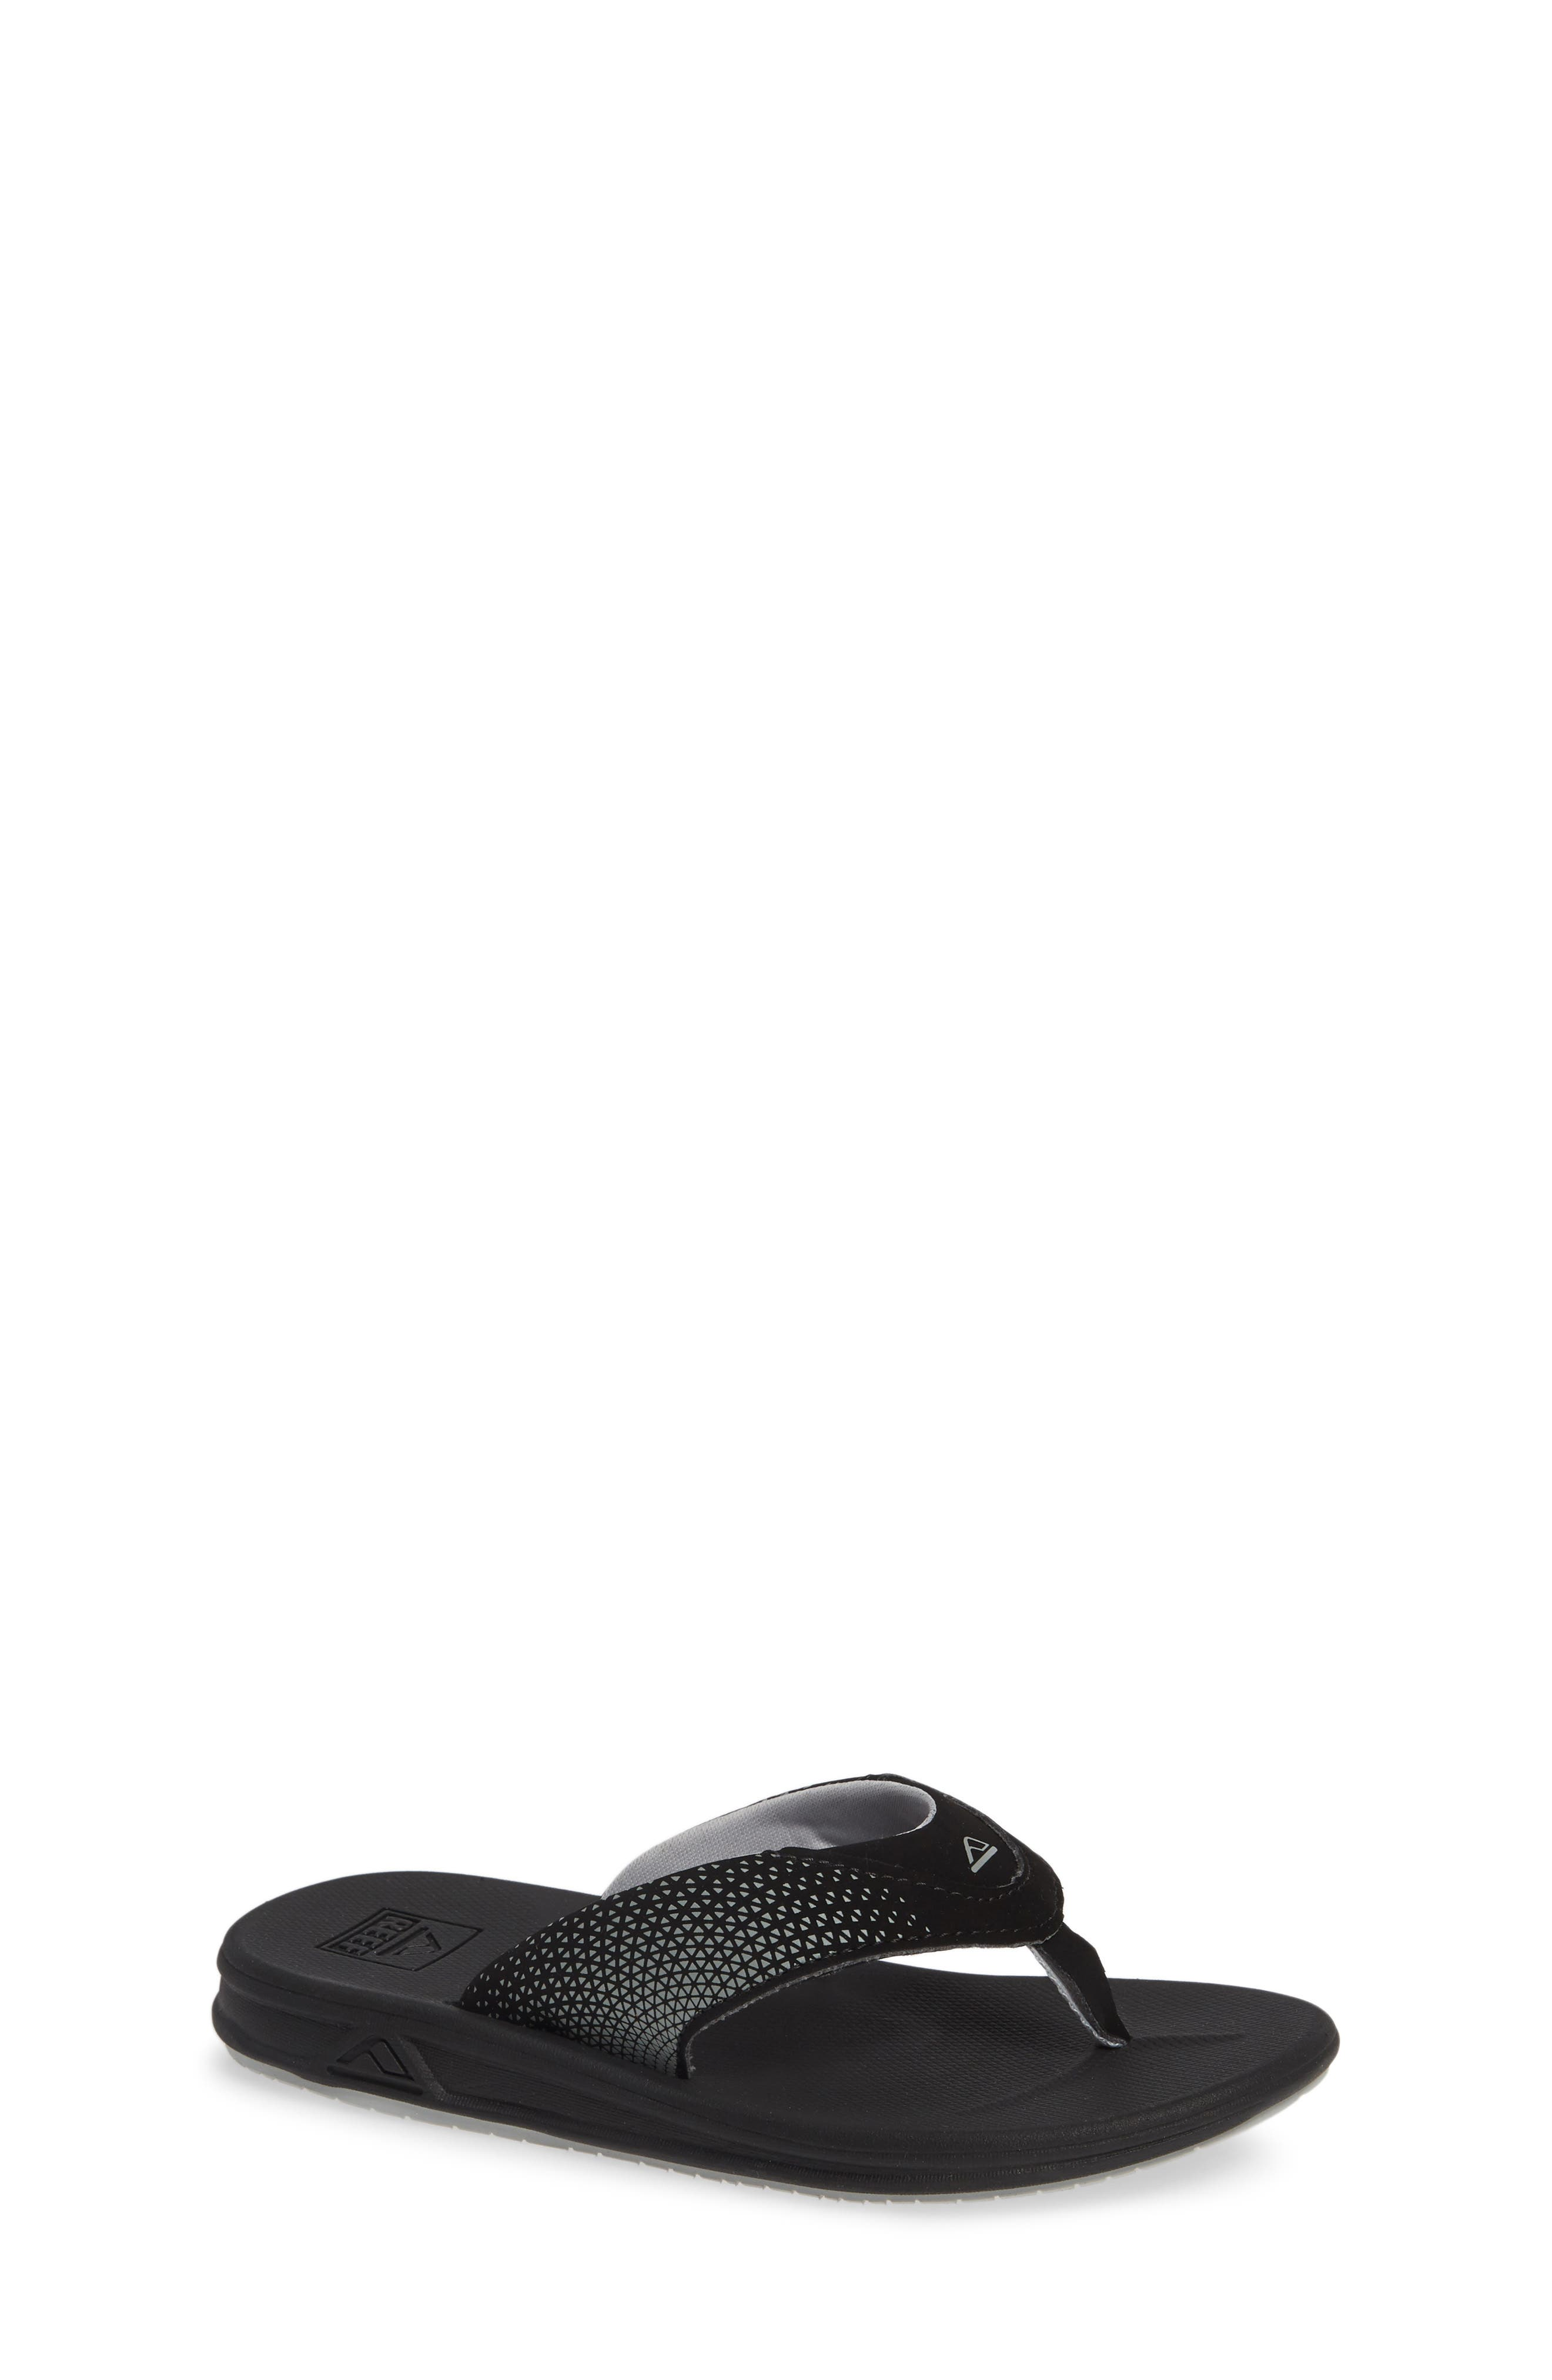 Grom Rover Water Friendly Sandal,                         Main,                         color, BLACK